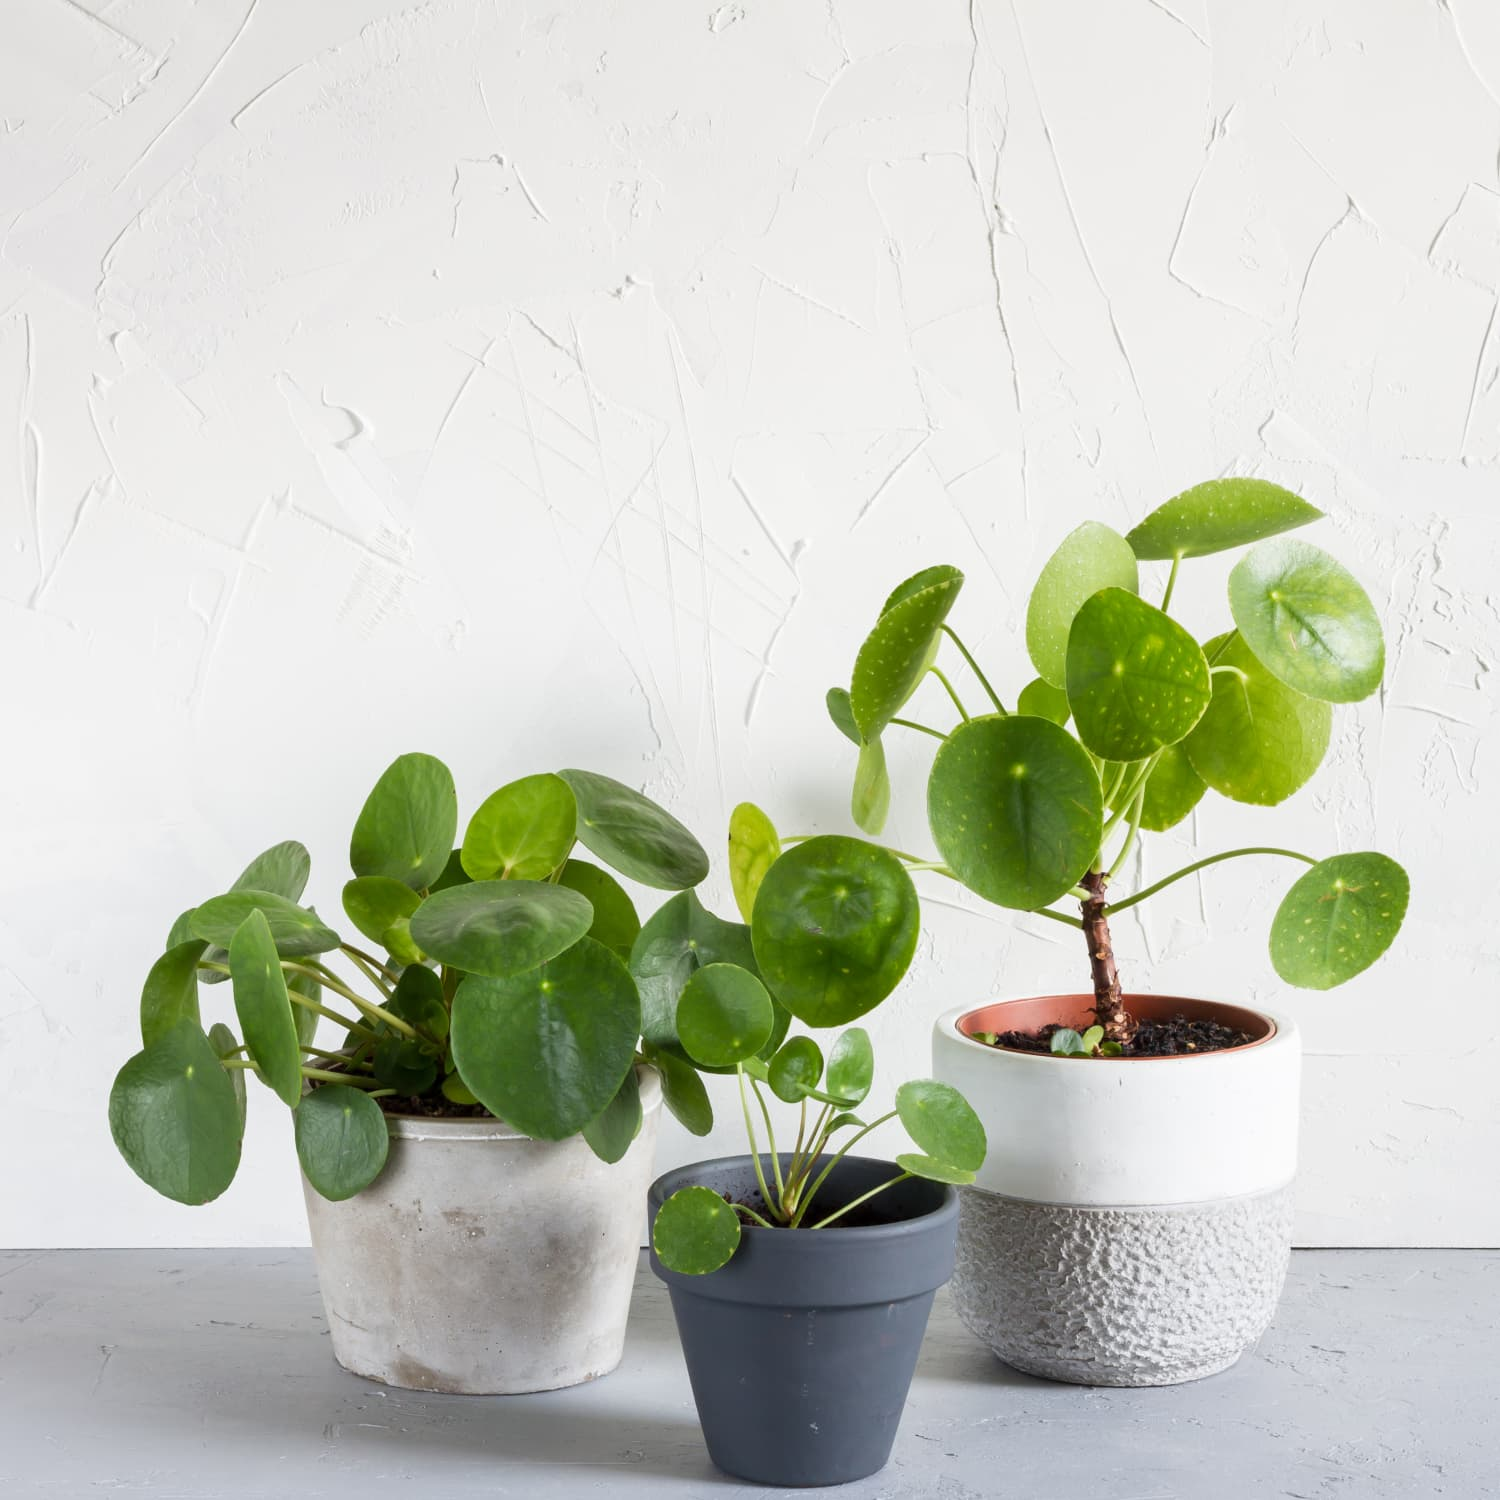 Chinese Money Plant Care How To Grow Maintain Pilea Peperomioides Apartment Therapy